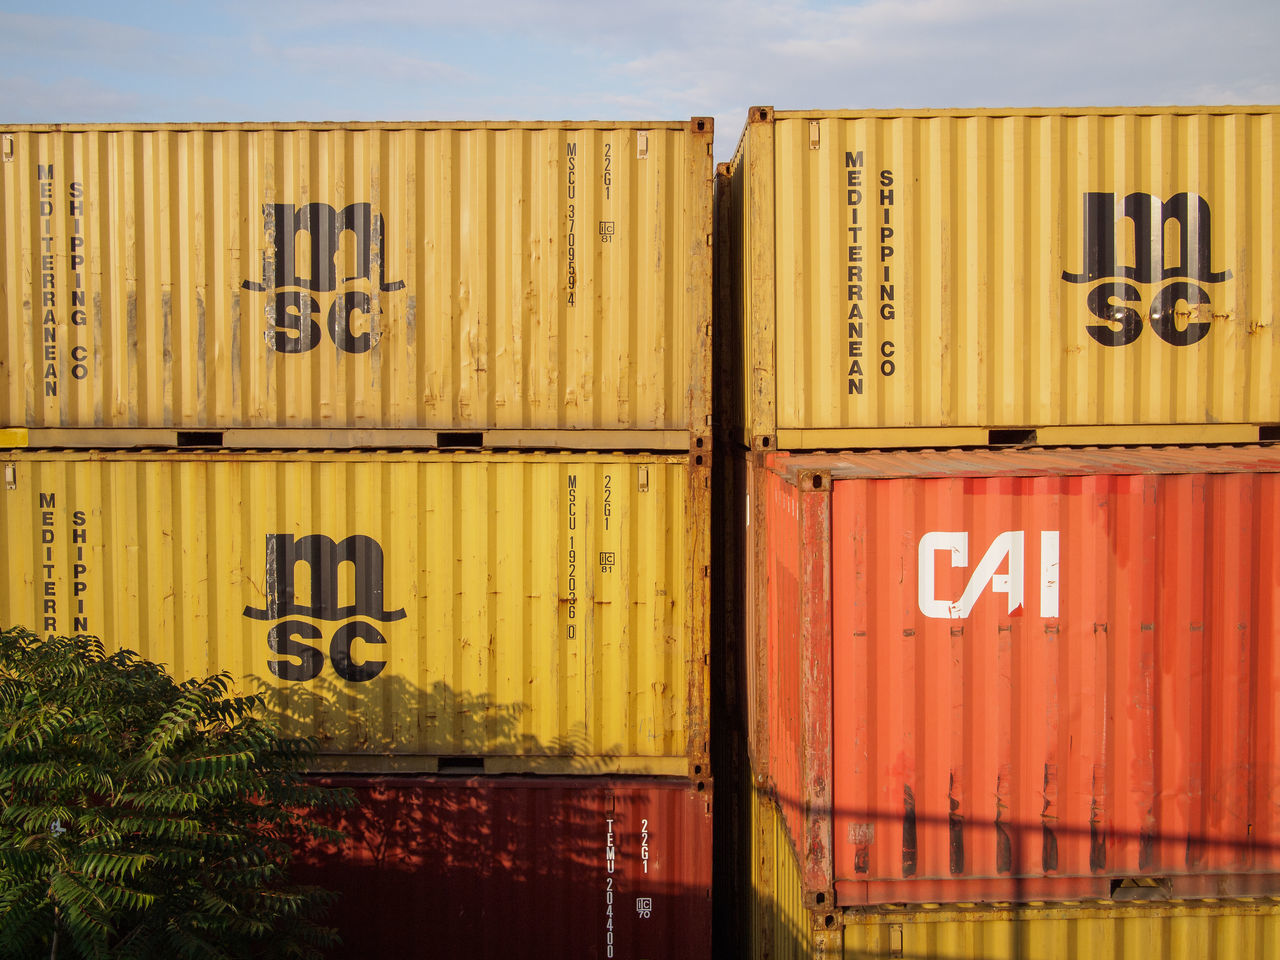 Cargo Container Freight Transportation Industry No People Red Sign Text Yellow